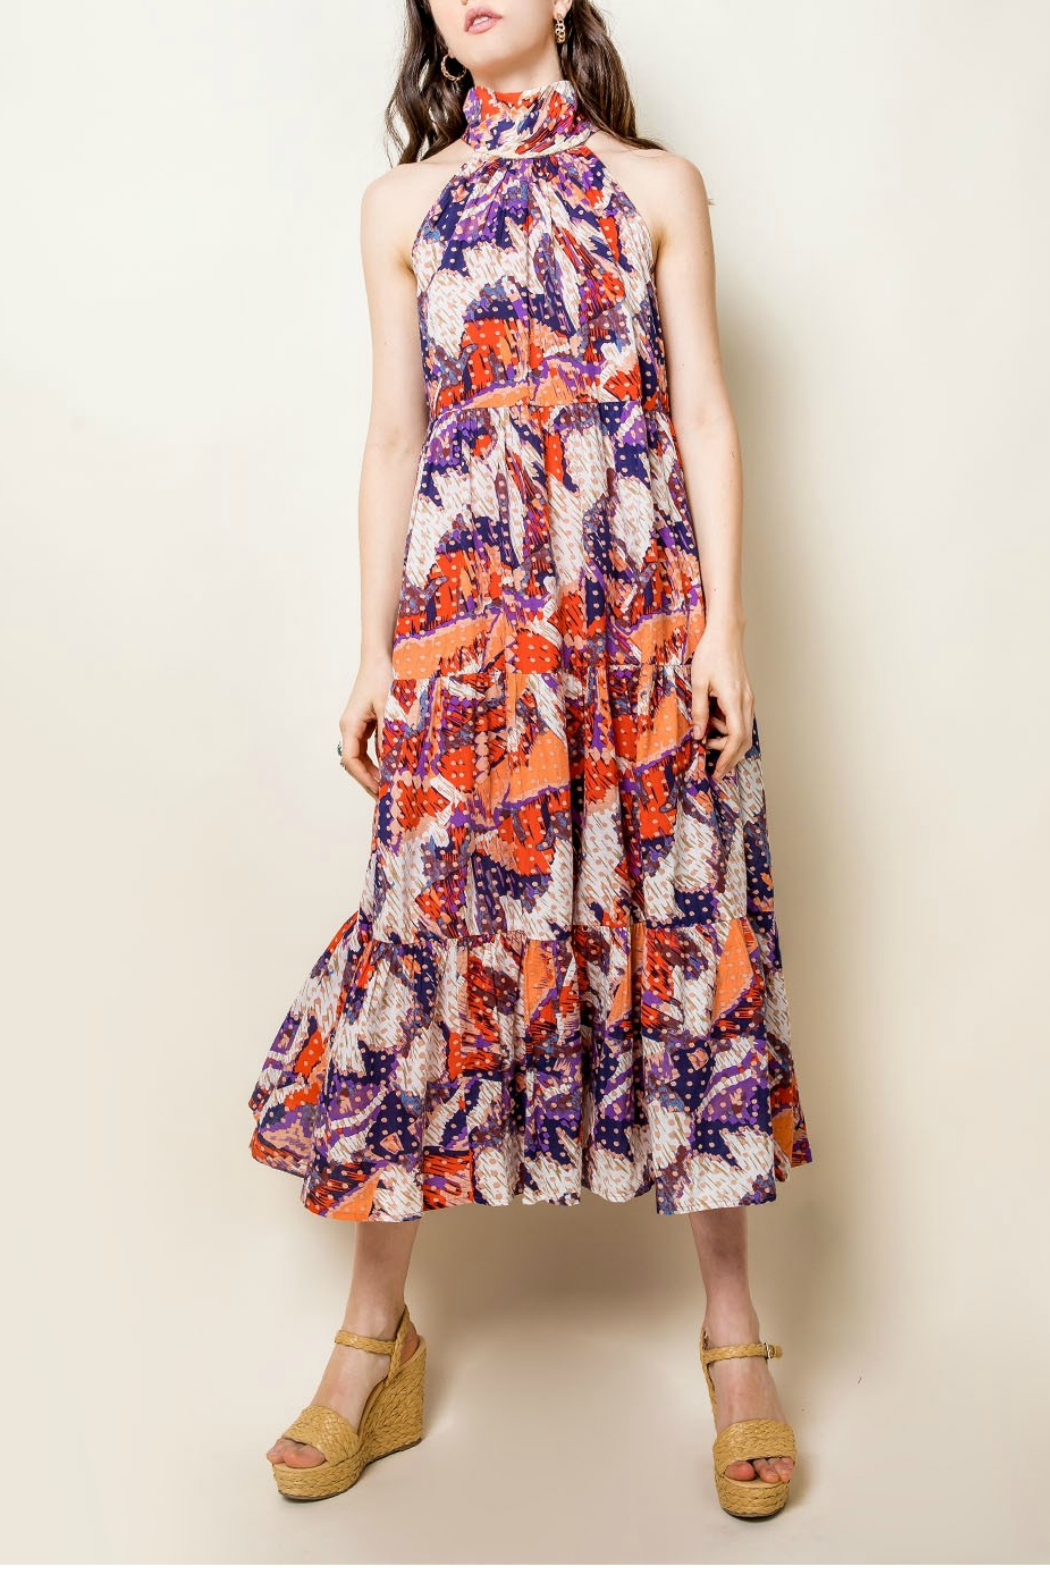 Thml Printer Halter Maxie Dress - Main Image